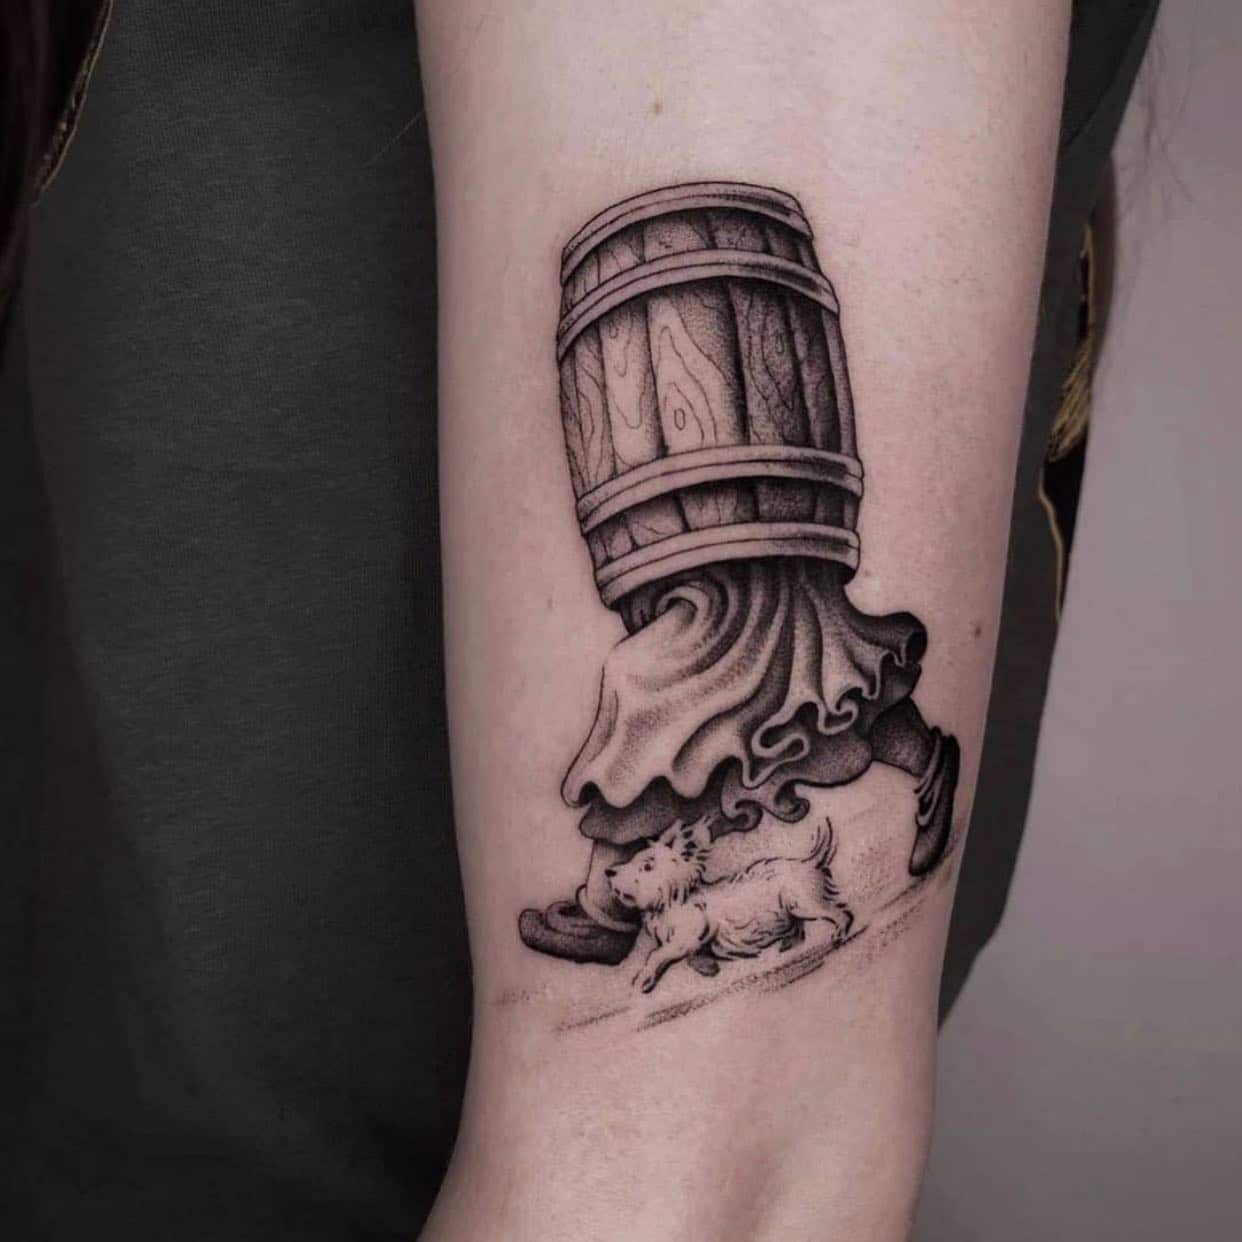 @vik_b_tattooer is obsessed with his barrel people and would love to do more!! At the moment his books are closed until November 16th but reception are more than happy to price any ideas you may have for Vik, so when his books do open, we will be able to book you in 🥳 —-  studioxiii tattoos tattooed tattooflash blackworkers bandg realism realistictattoo skull skinartmag skulltattoo lion liontattoo tattooartist edinburghtattooartist edinburghtattoo girltattoo blackclaw uktta ttt eztattoocartridges ukbta skindeep txtooing tattoomediaink thebesttattooartist tattoosnob tattooartistic